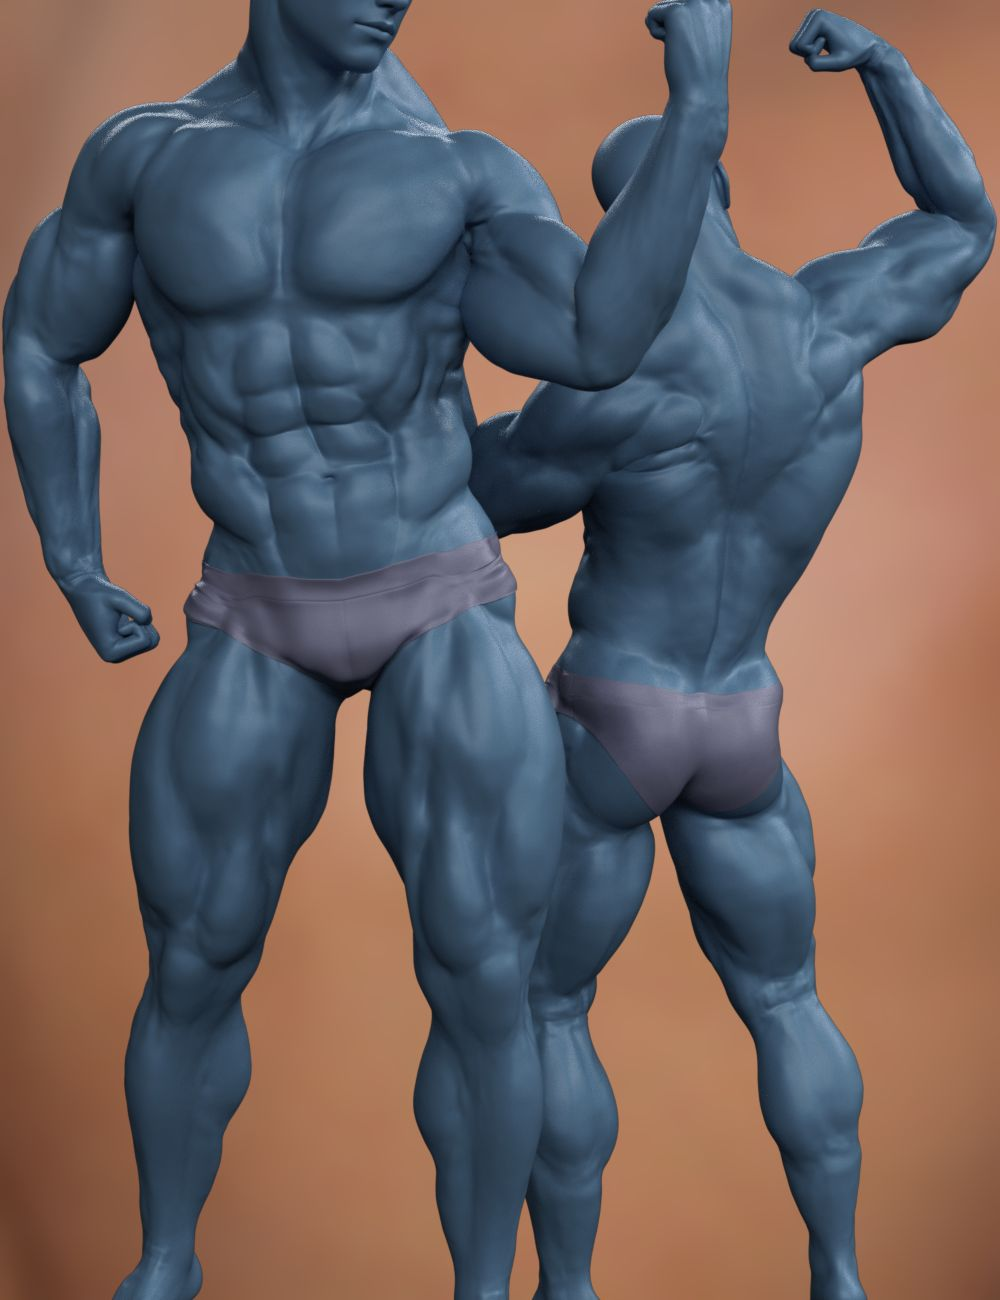 Musculature HD Morphs for Genesis 8 Male by: xenic101, 3D Models by Daz 3D